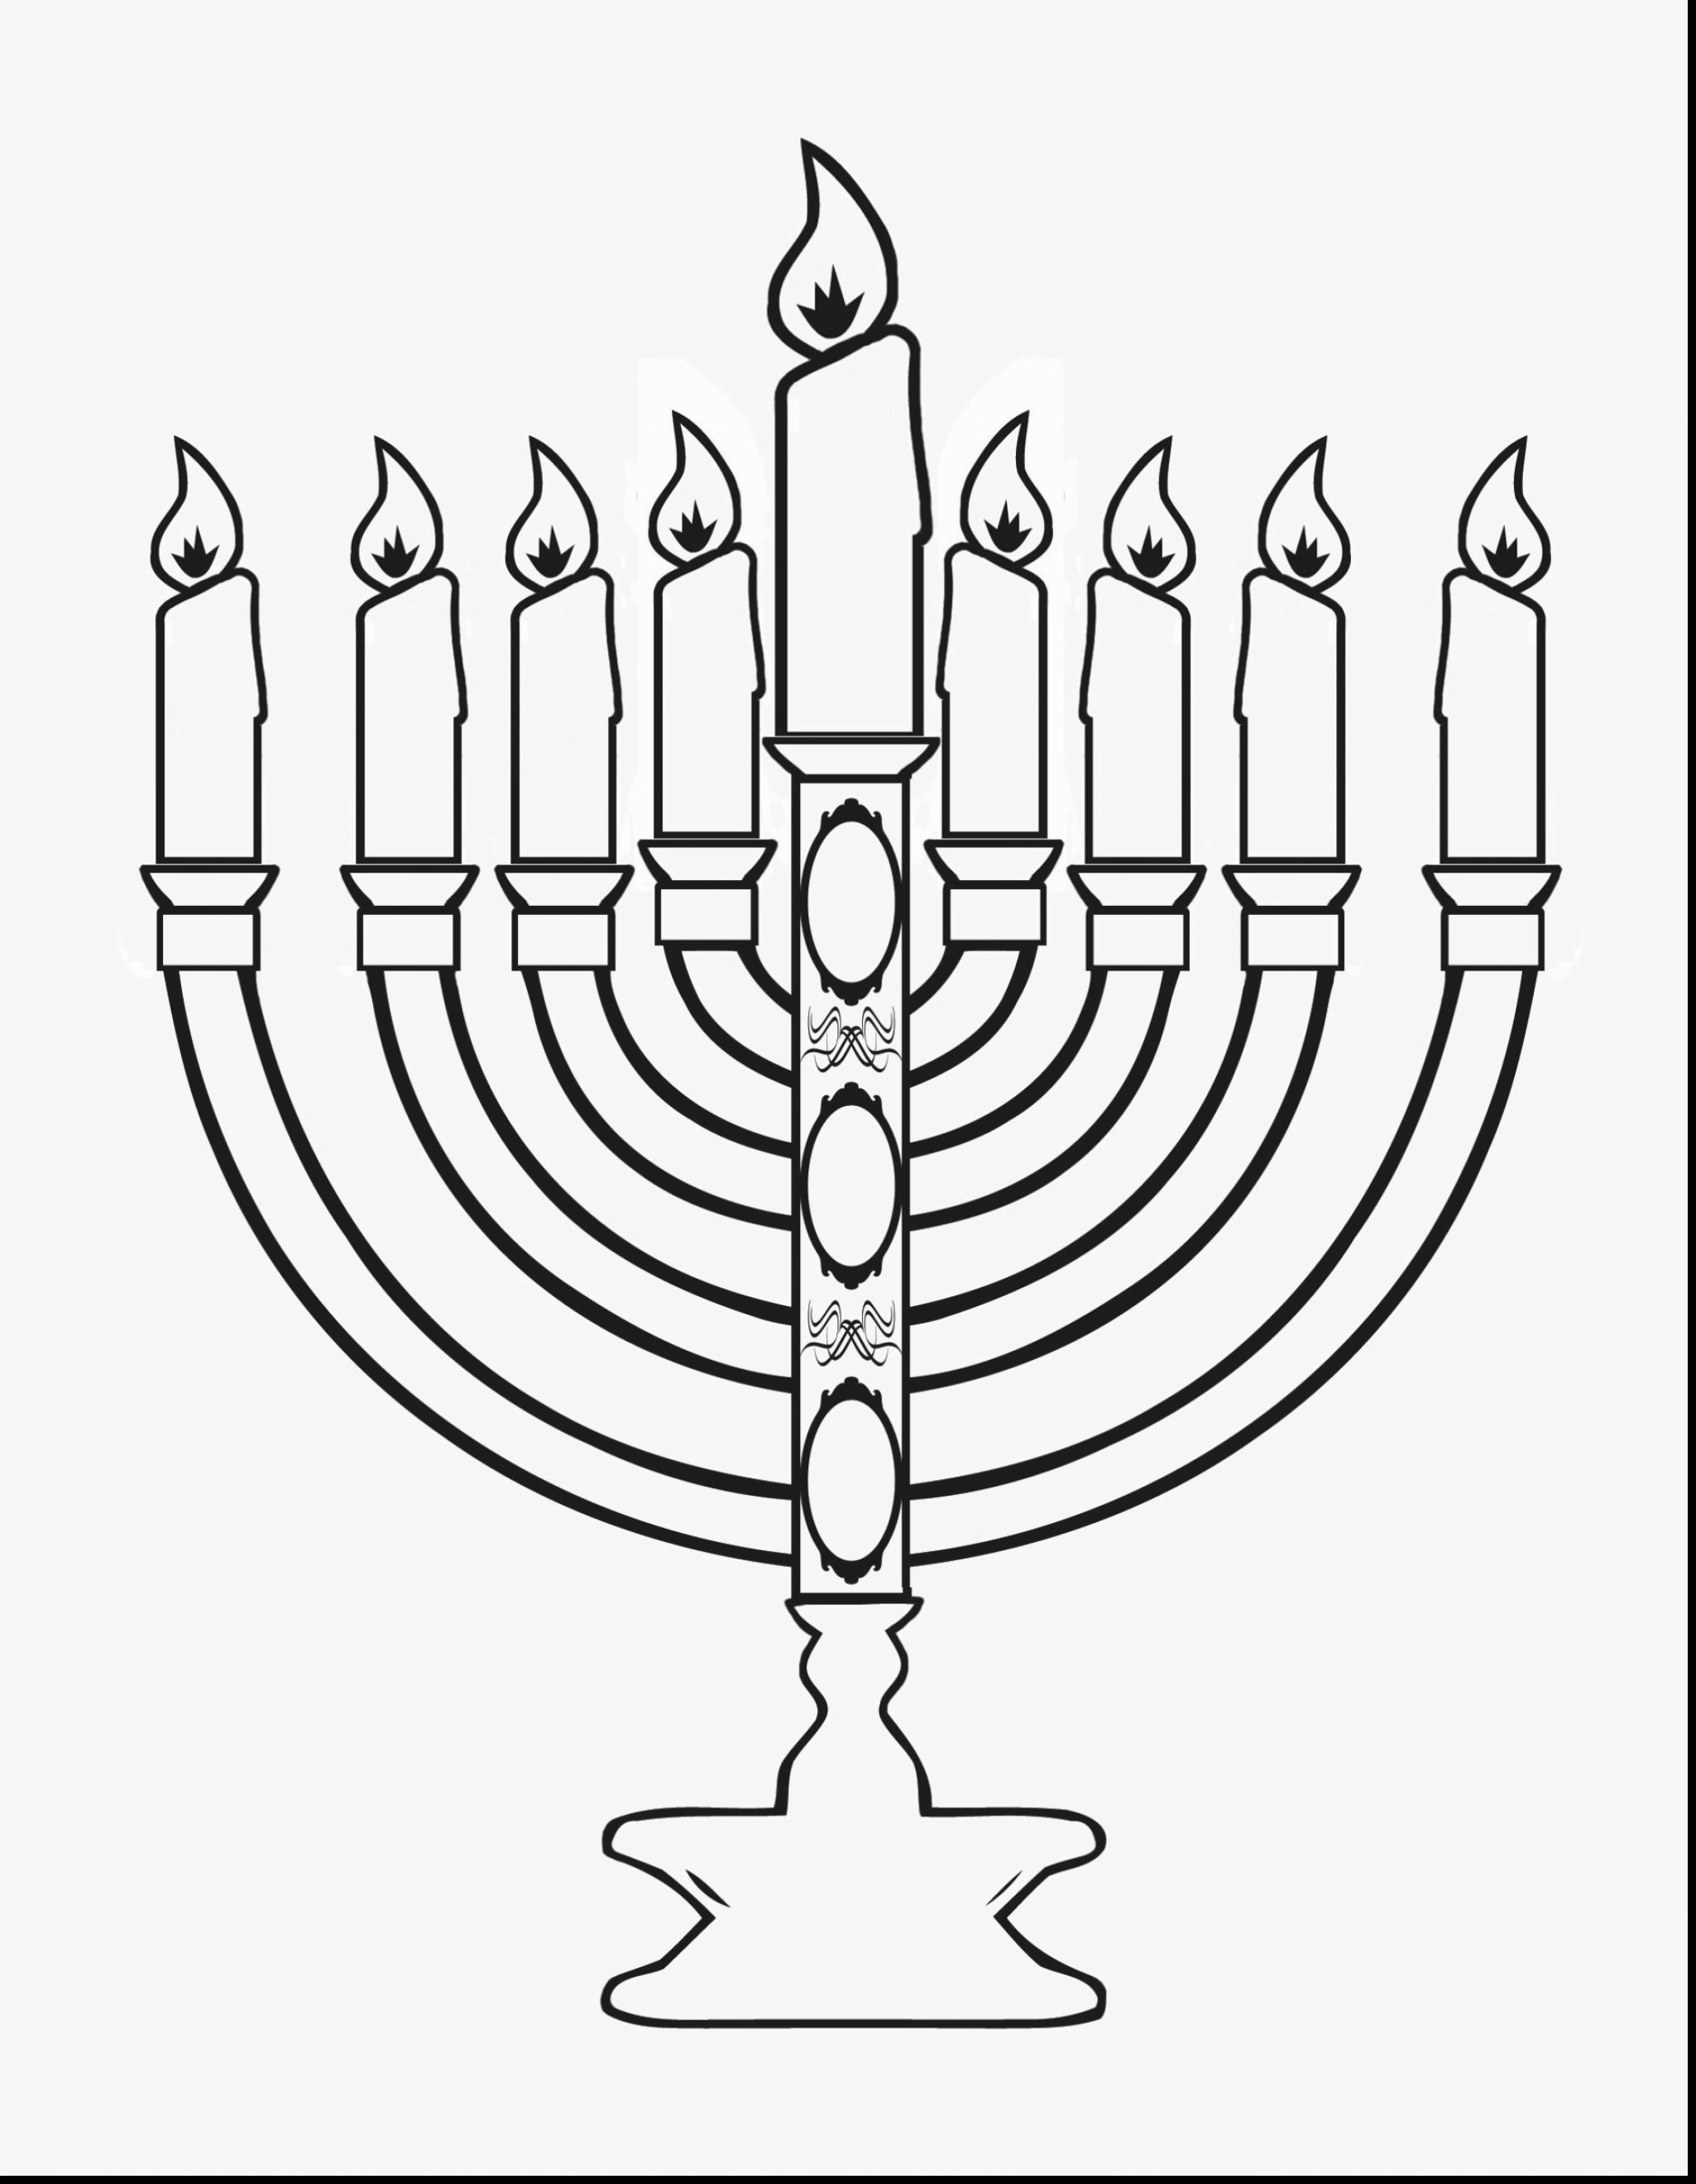 Hanukkah Menorah Drawing At Free For Personal Use Lighting Diagram 2050x2640 Good Coloring Pages Menorahs With Page